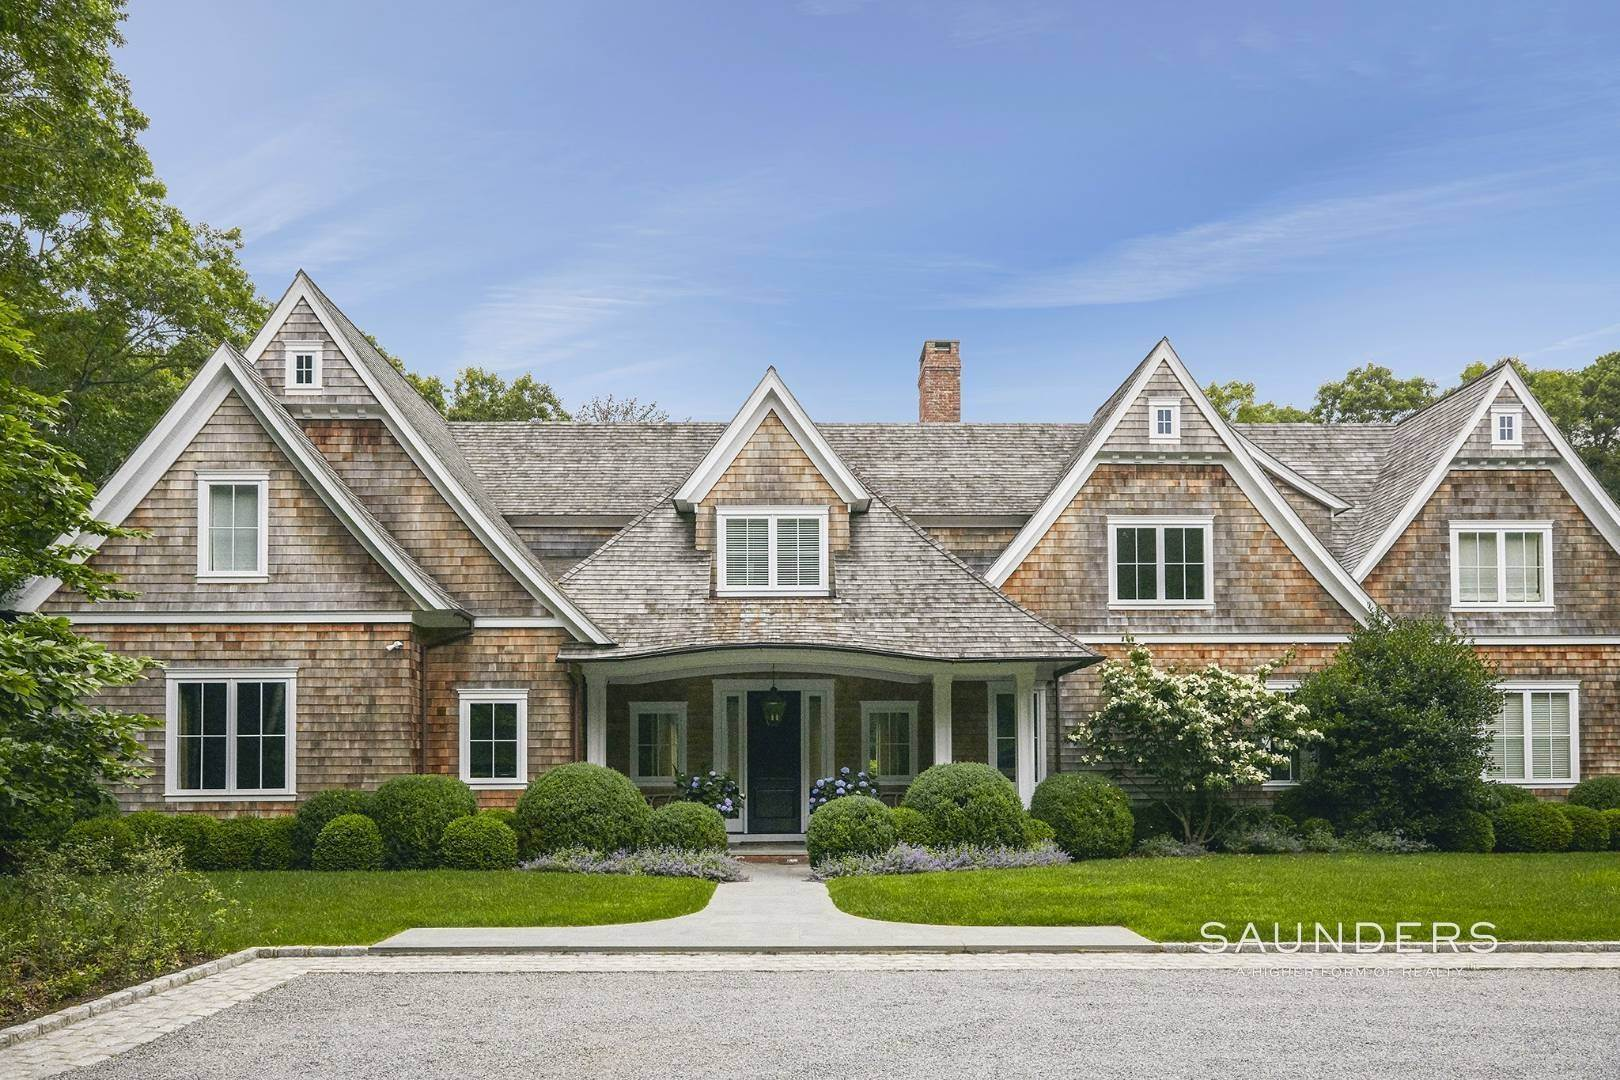 Single Family Homes for Sale at Rare Opportunity In Wainscott South With Tennis 23 Two Rod Highway, Wainscott, East Hampton Town, NY 11975